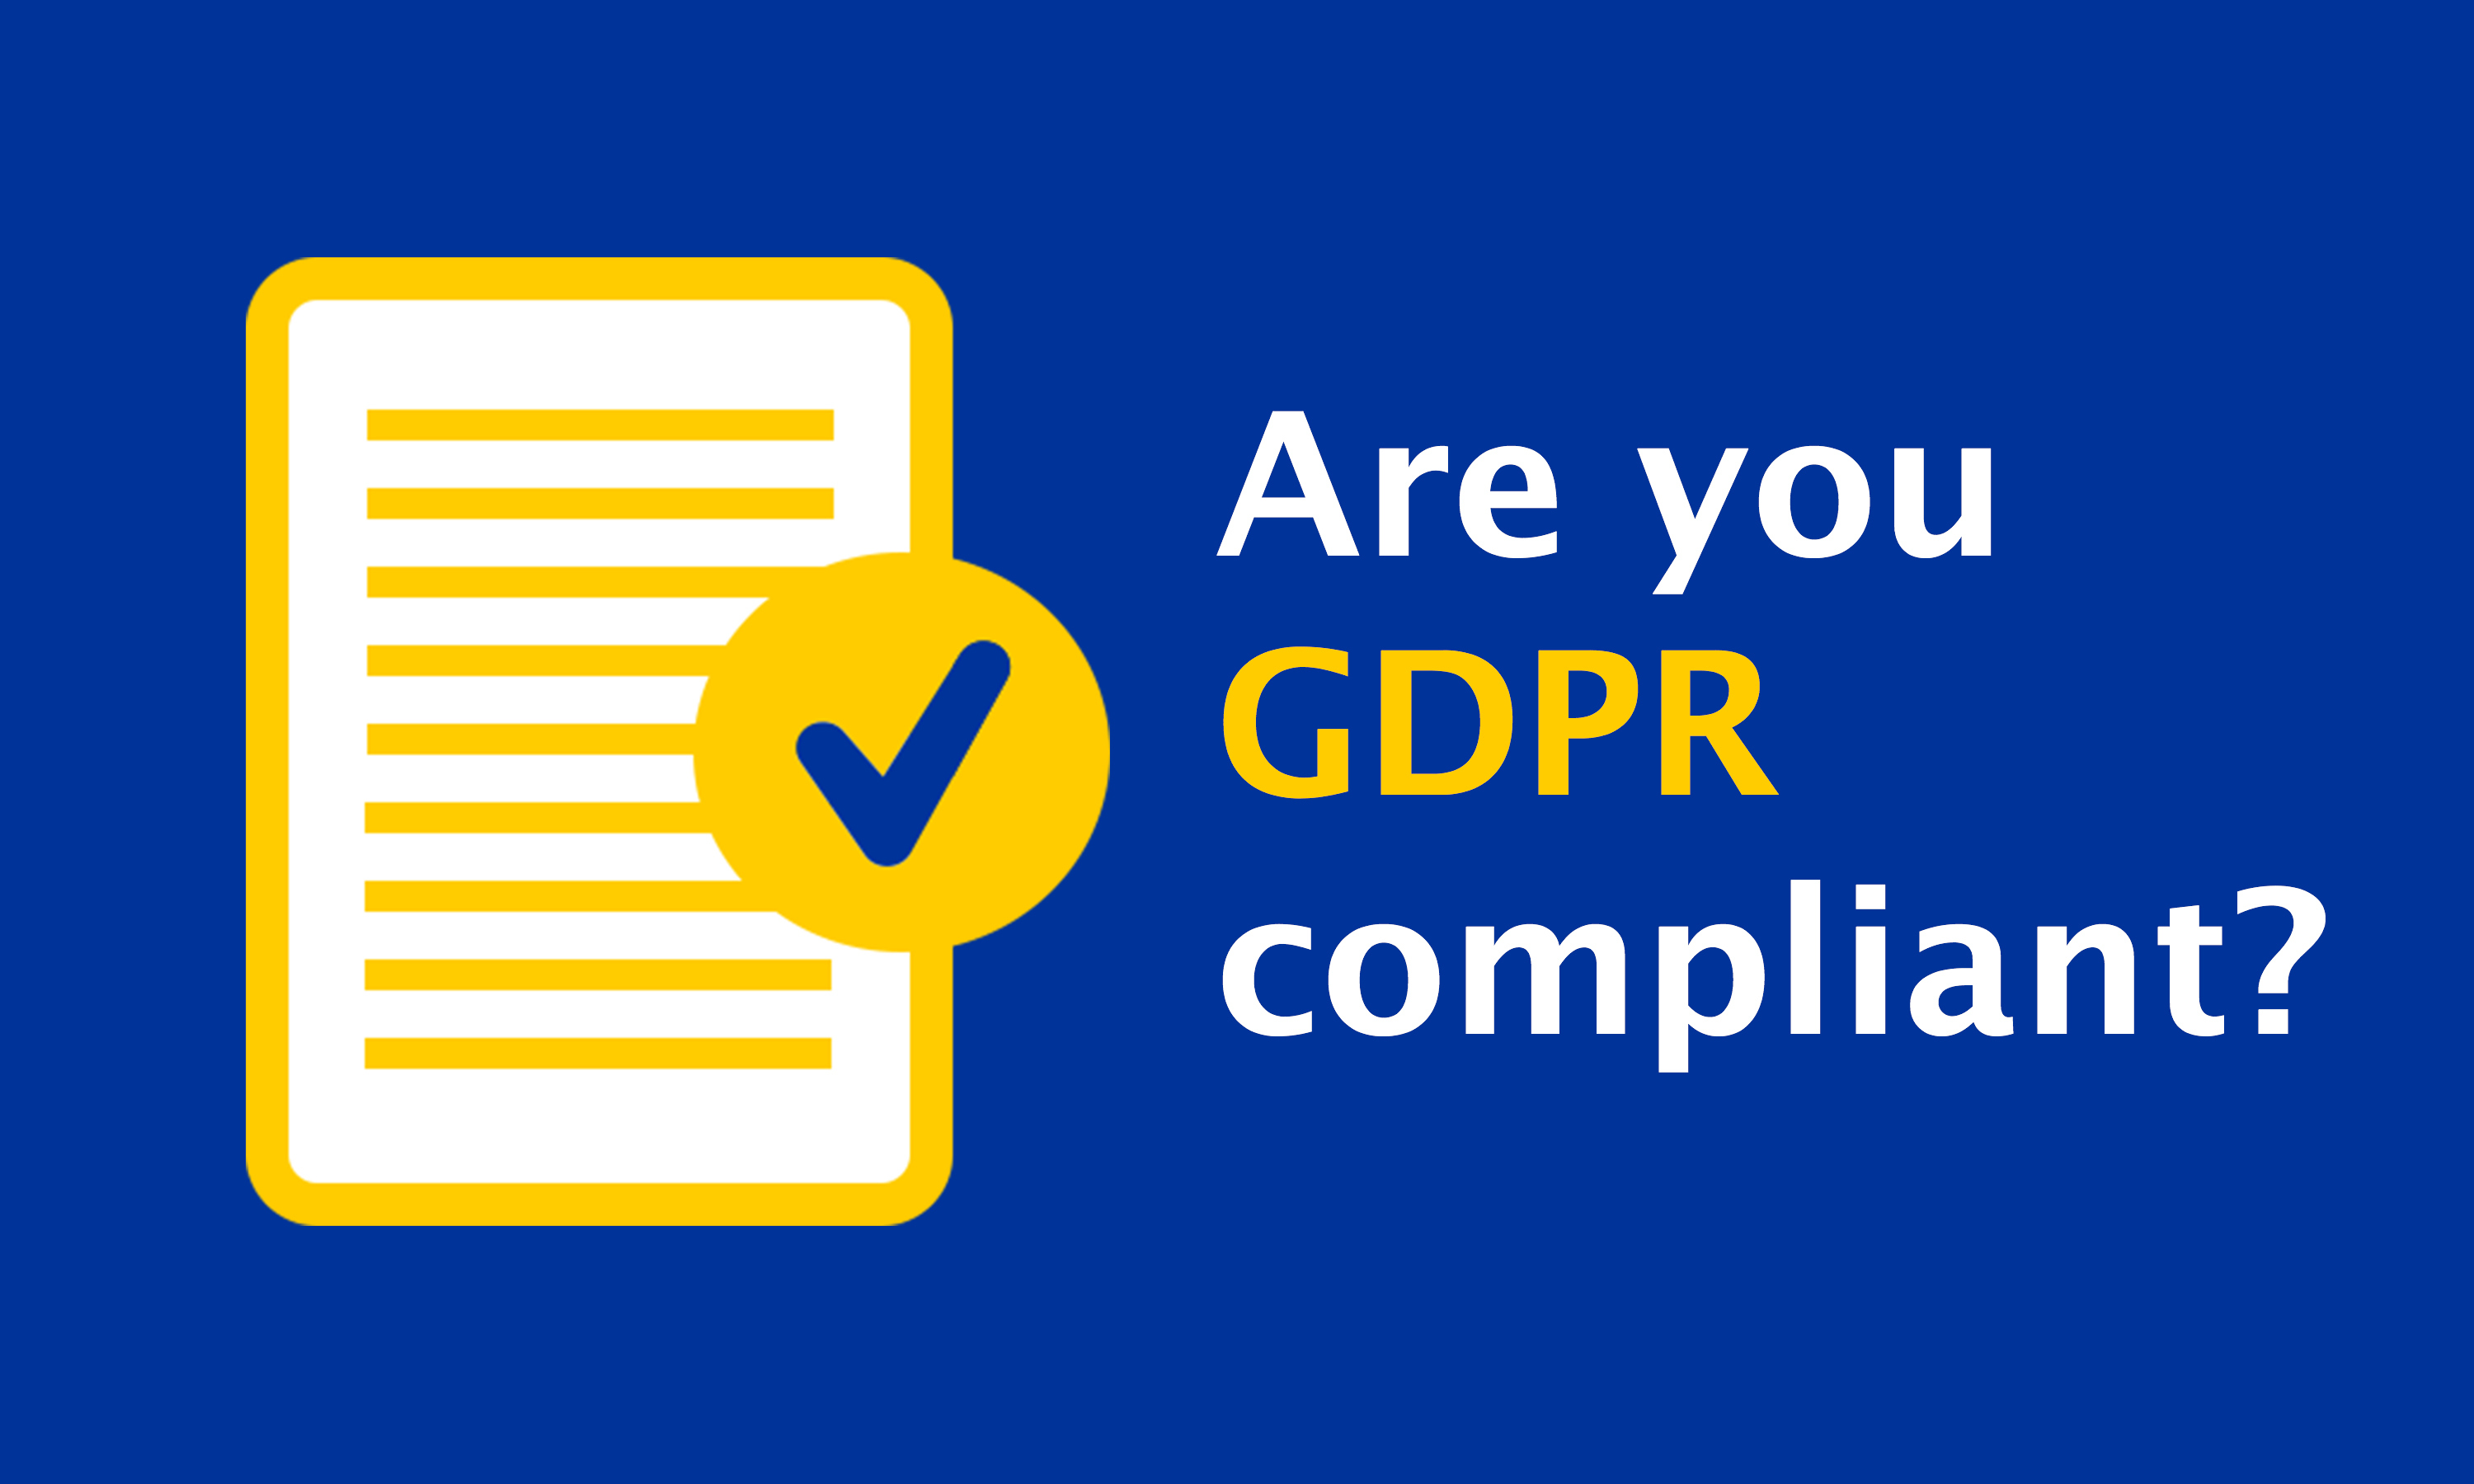 Make Sure Your Nonprofit Is Storing Data Properly To Remain Compliant For GDPR